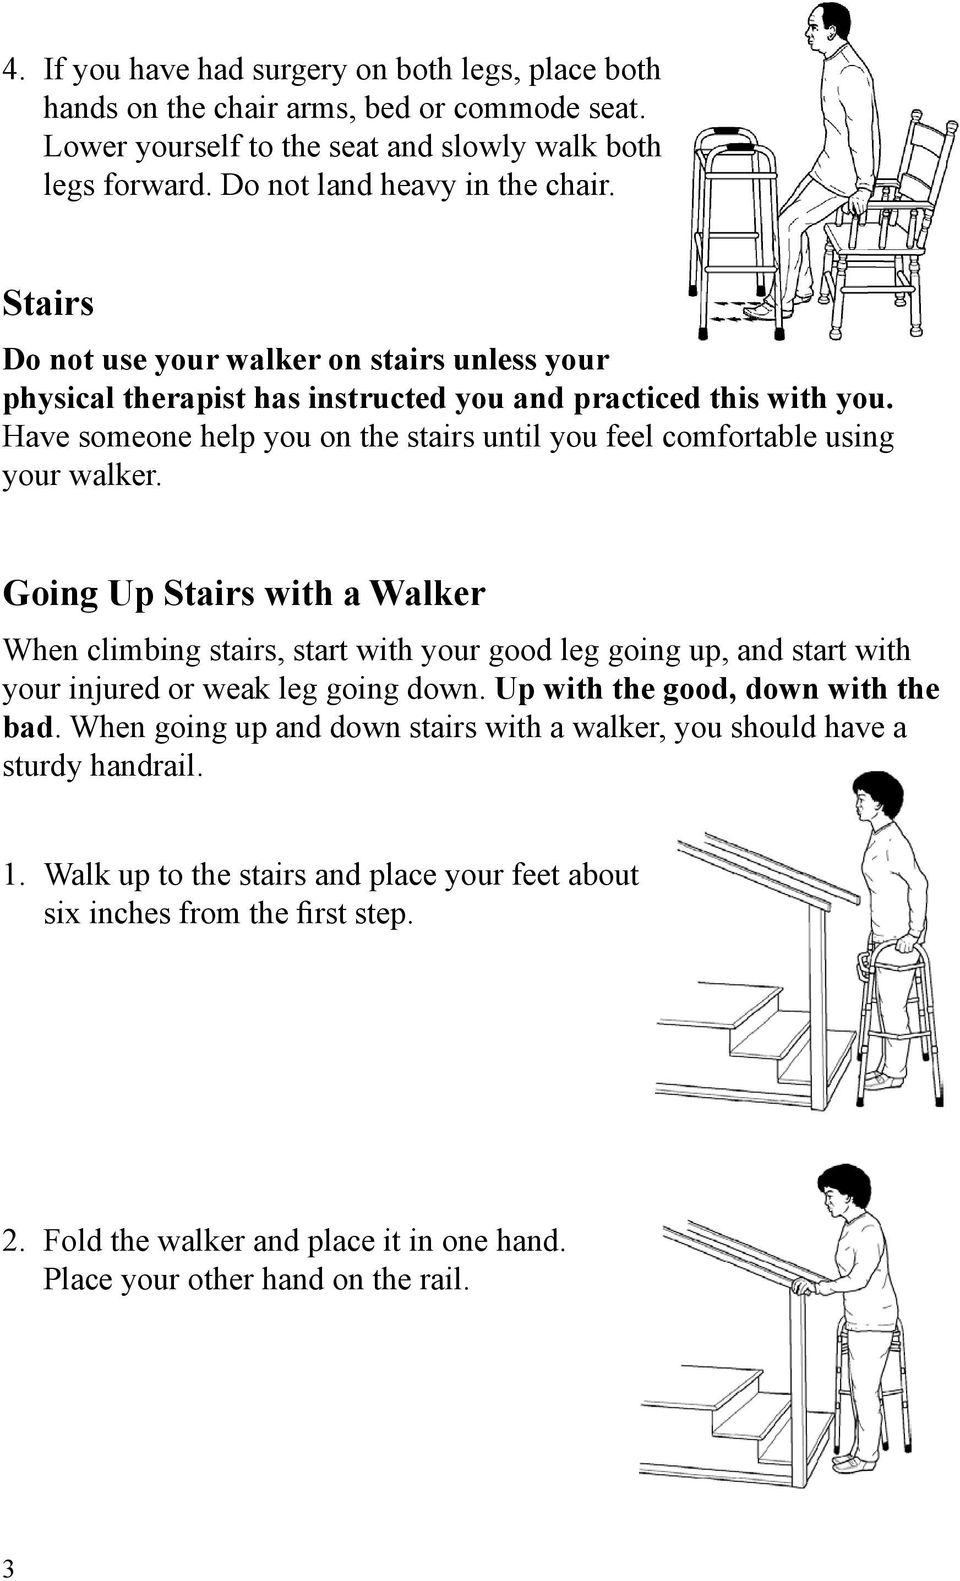 Going Up Stairs with a Walker When climbing stairs, start with your good leg going up, and start with your injured or weak leg going down. Up with the good, down with the bad.